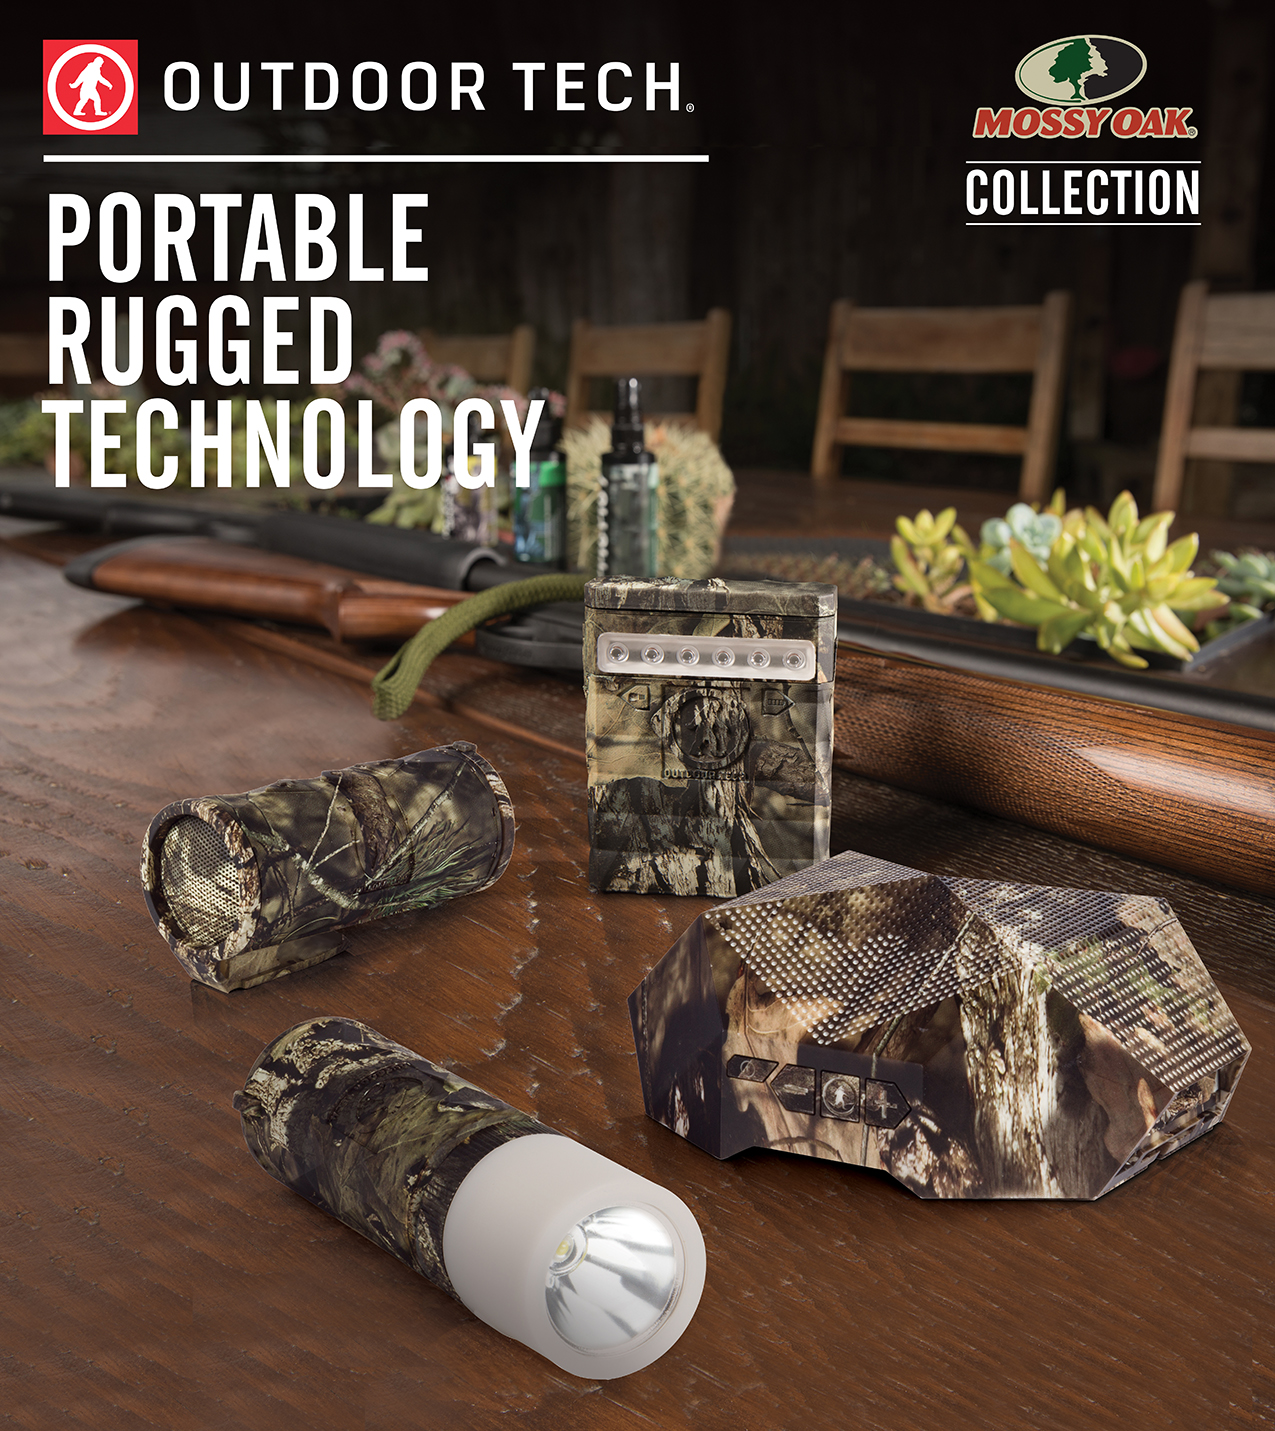 Press Archives Outdoor Tech Blog Electric Outlets Group Picture Image By Tag A Discrete Design Allows Techs Rugged Technology To Be Enjoyed Anytime Anywhere The Collaboration With Mossy Oak Enhances Esthetic